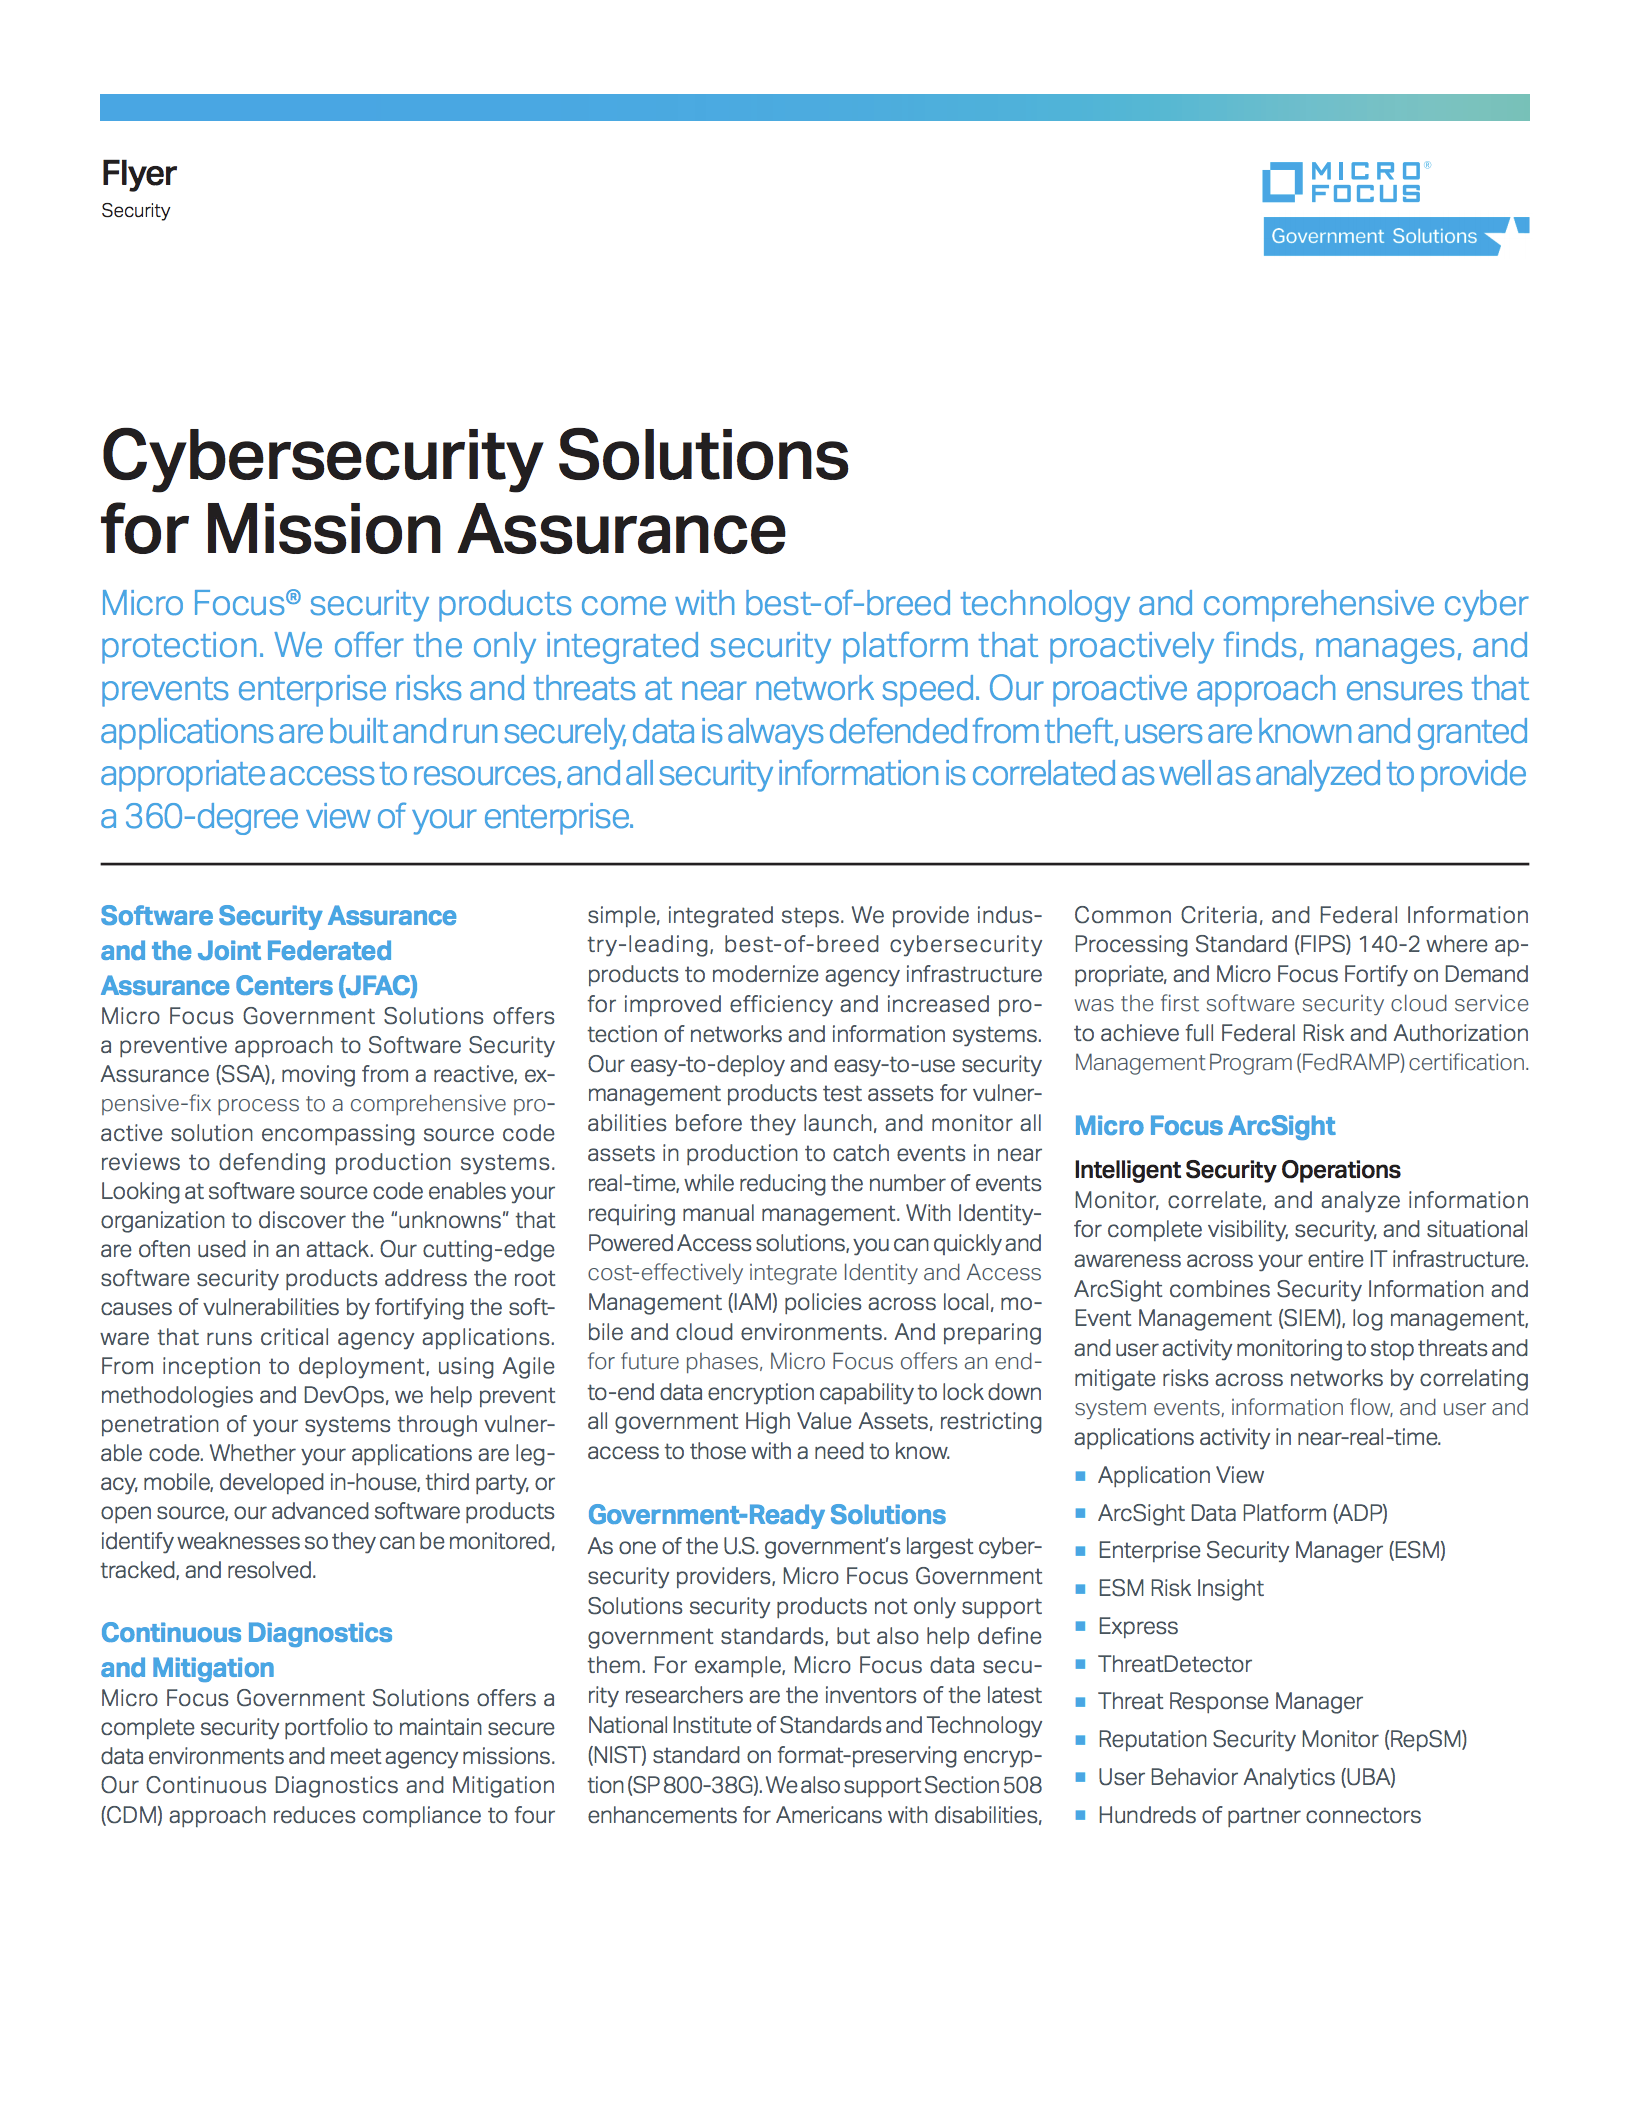 Cybersecurity Solutions for Mission Assurance